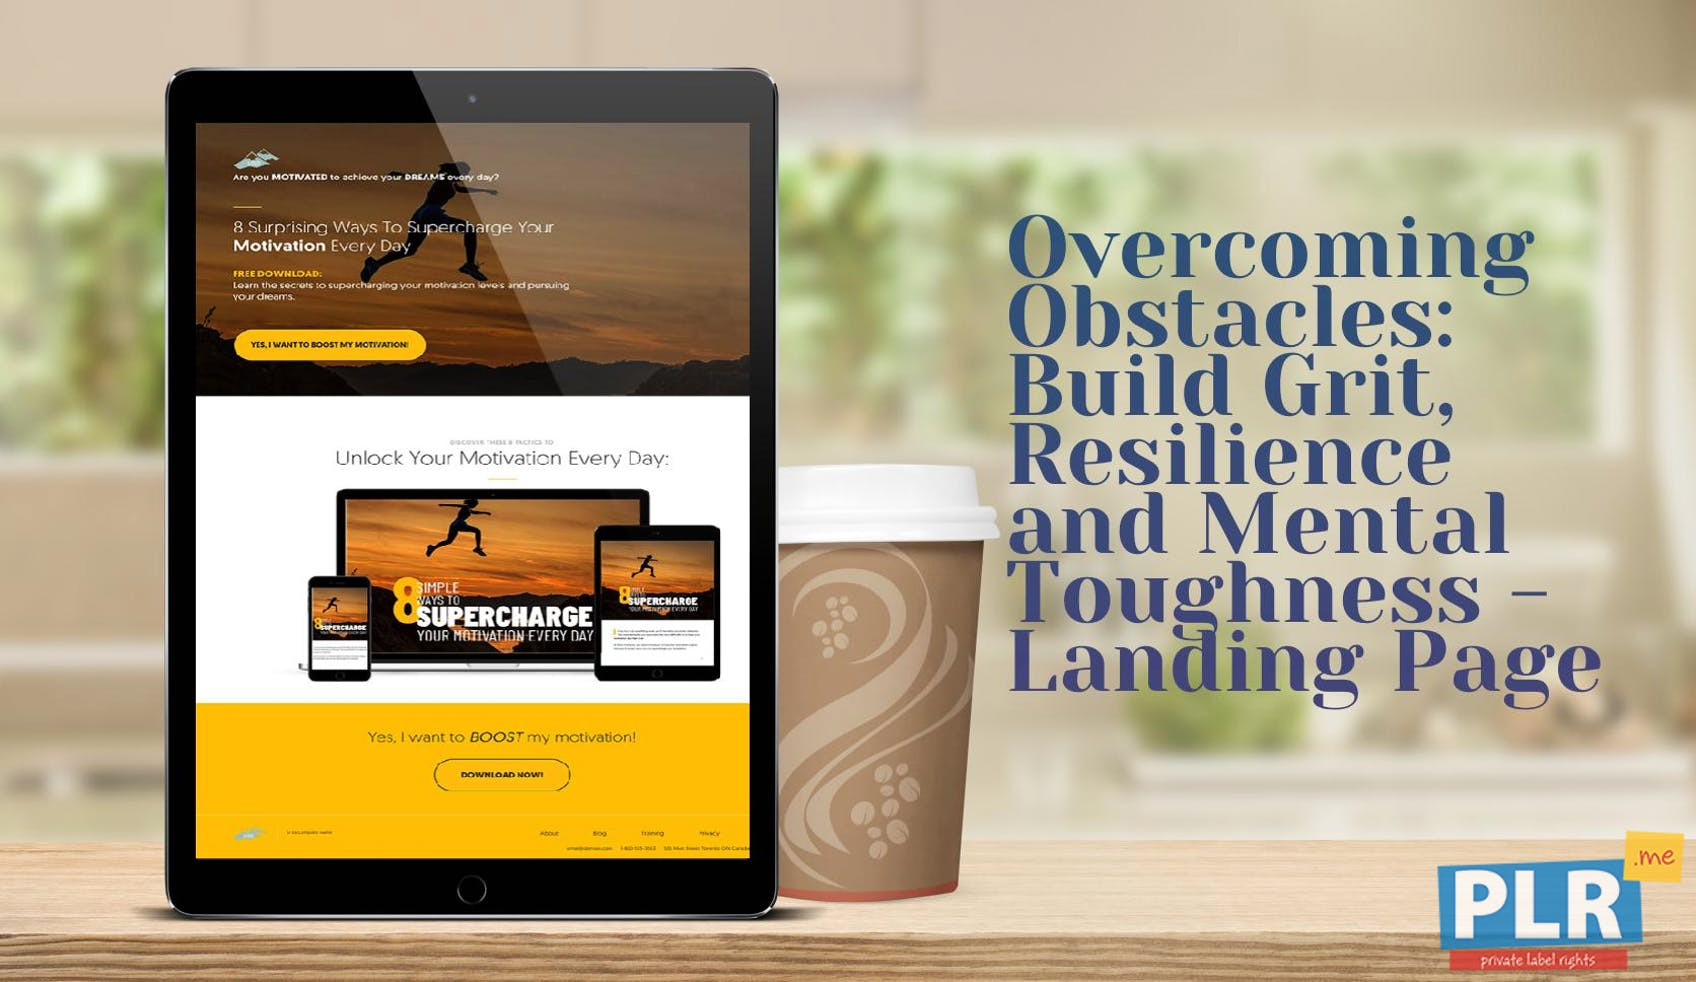 Overcoming Obstacles: Build Grit, Resilience And Mental Toughness - Landing Page